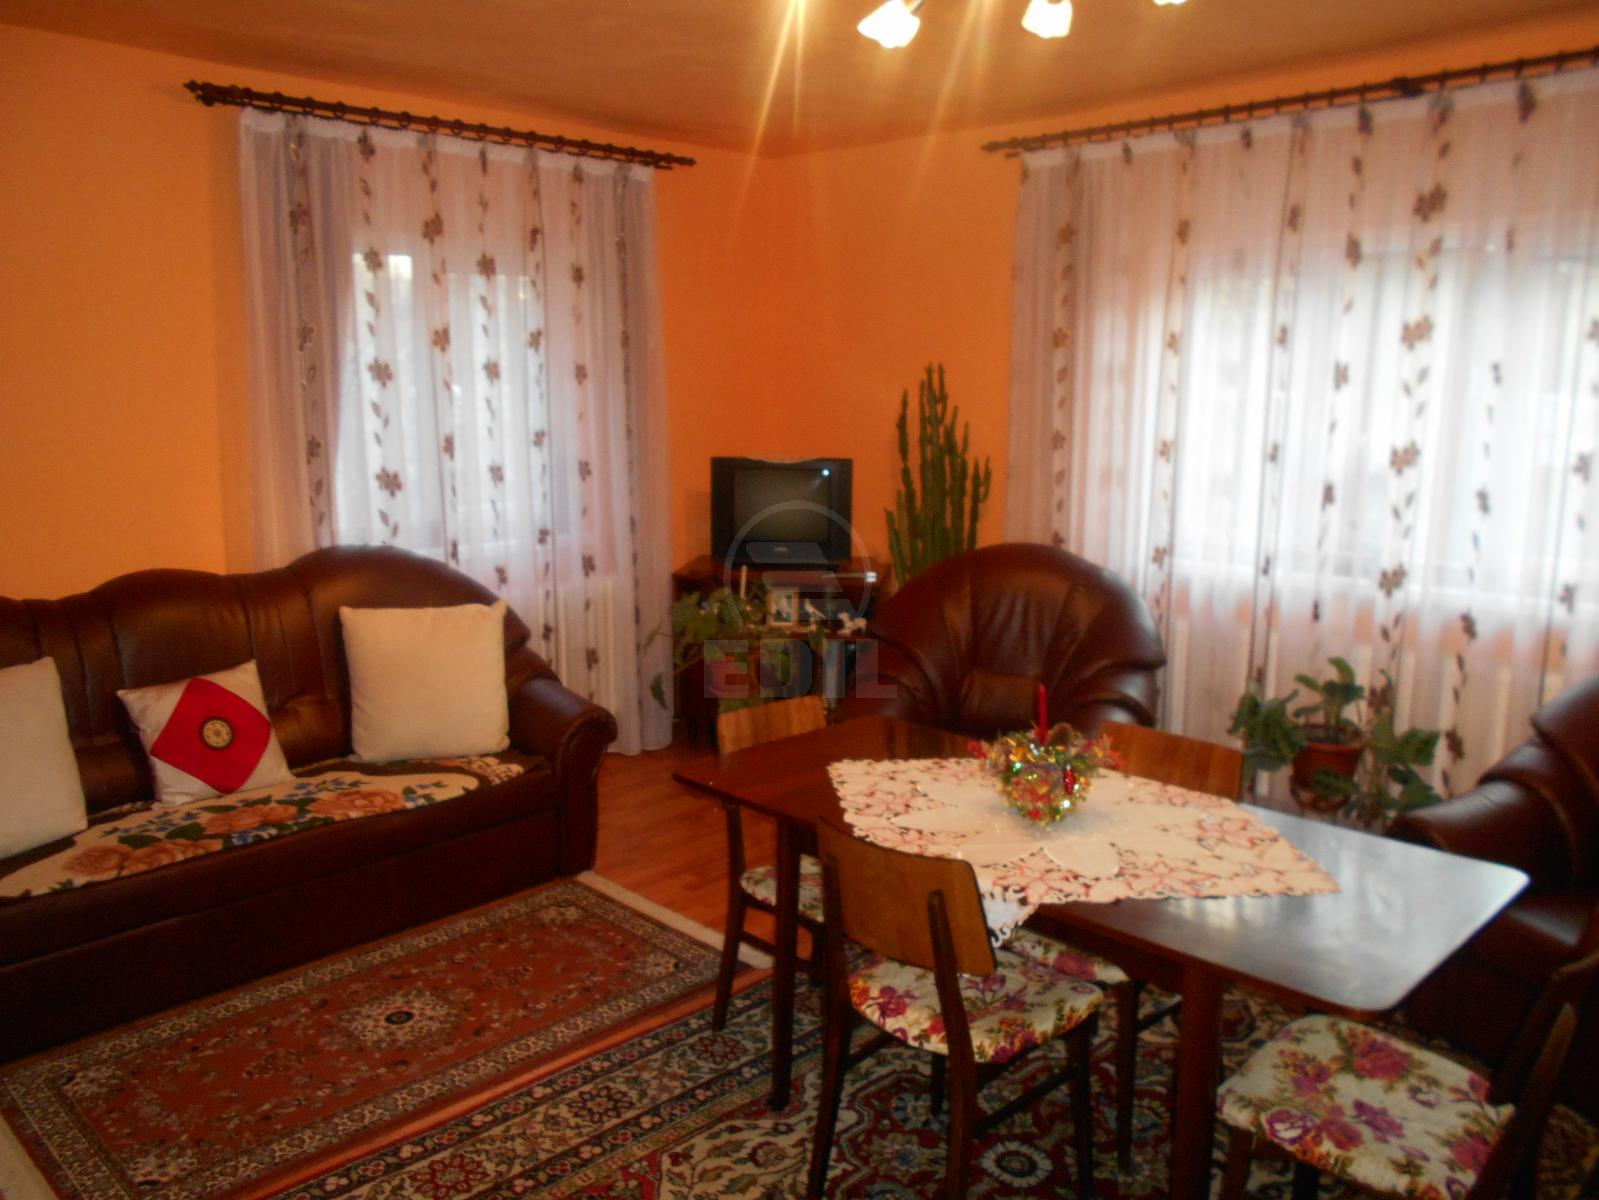 House for rent 5 rooms, CACJ272557-2